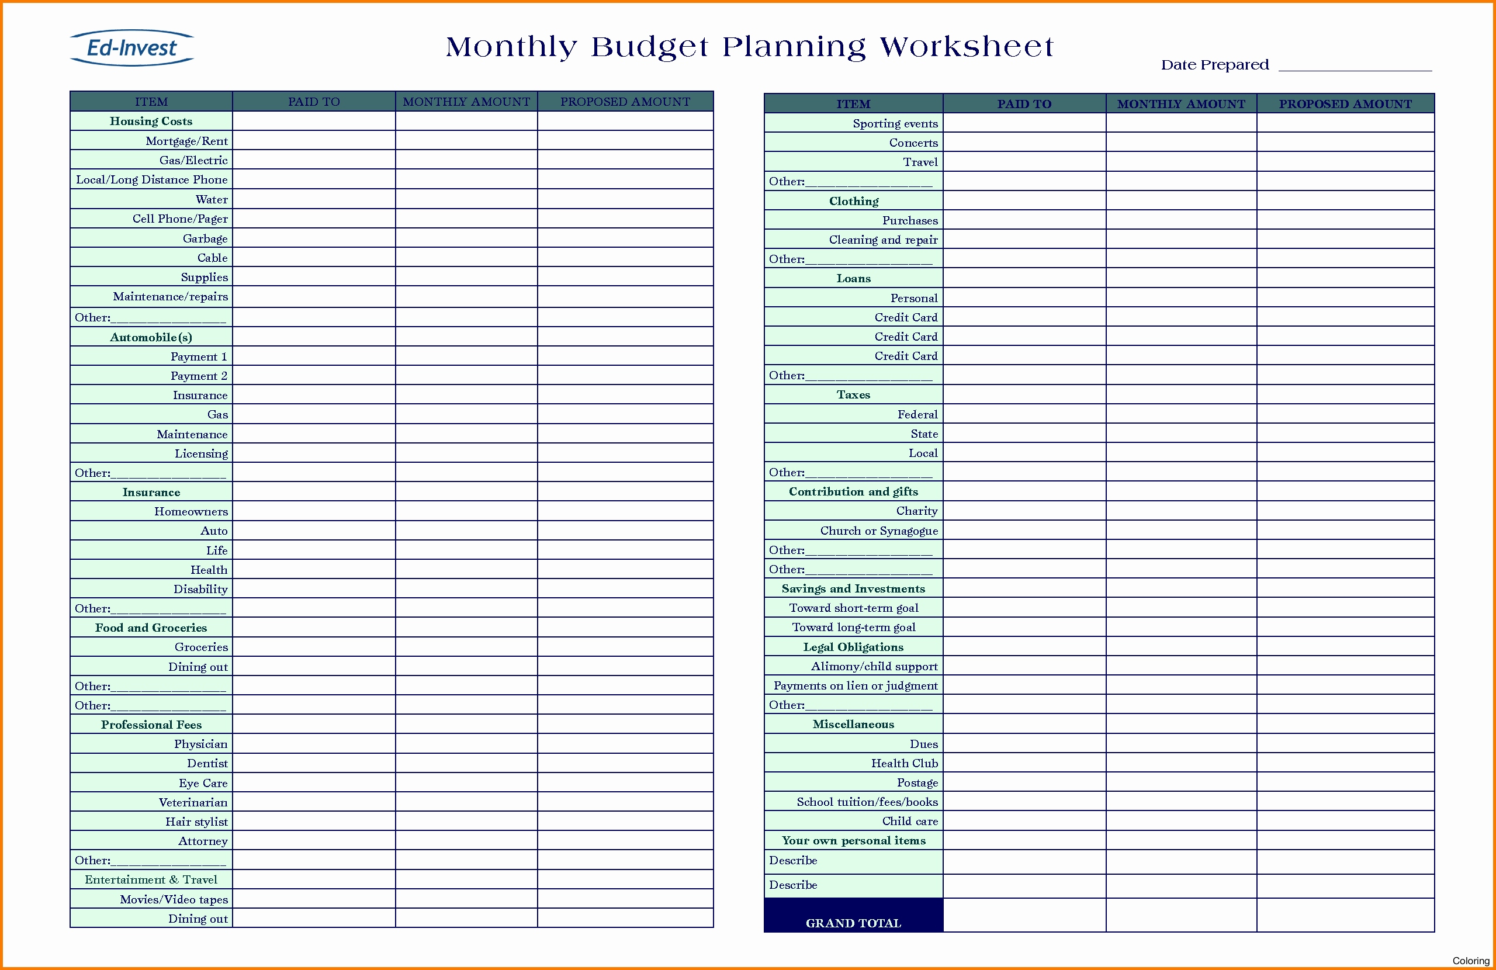 Free Retirement Excel Spreadsheet Within Retirement Planning Worksheet Excel Income Free Spreadsheet Canada